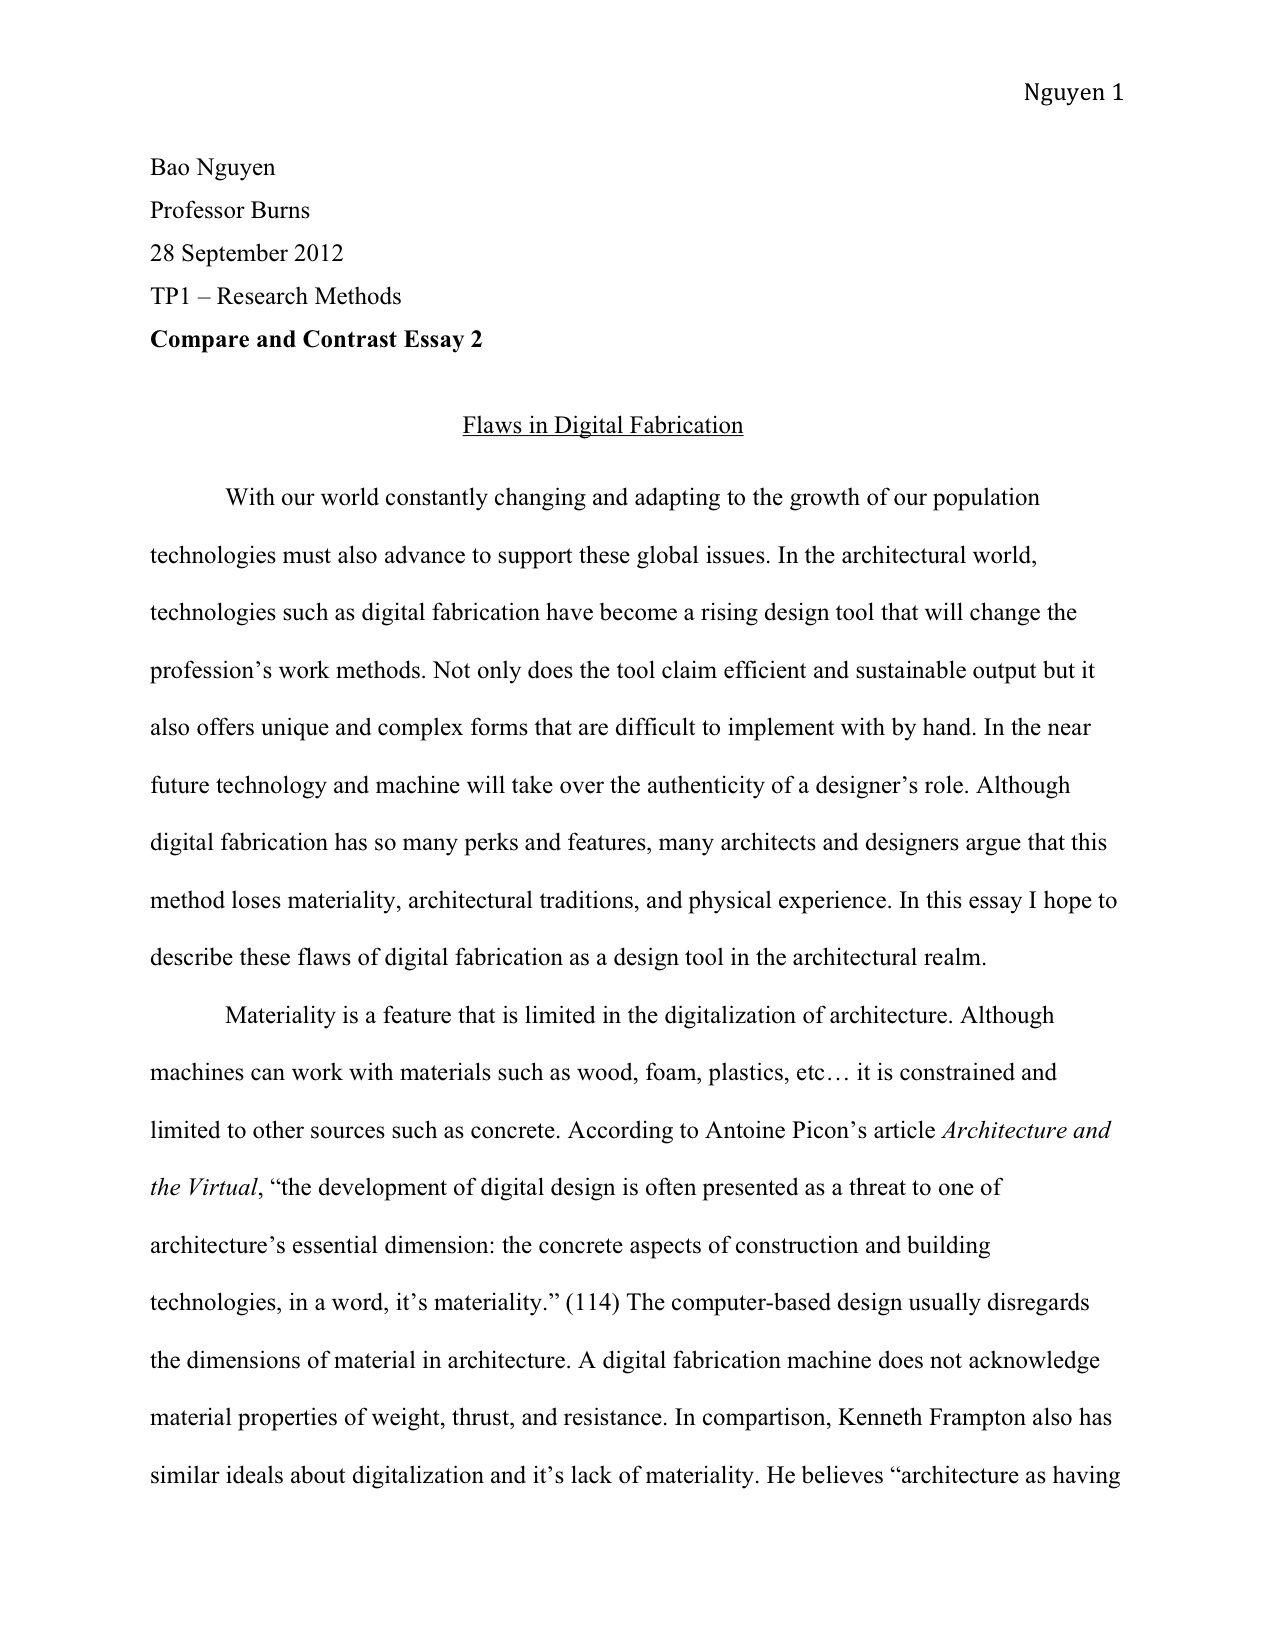 004 How To Write Essay Tp1 3 Amazing About Yourself An For A Job Interview Titles In Paper Full